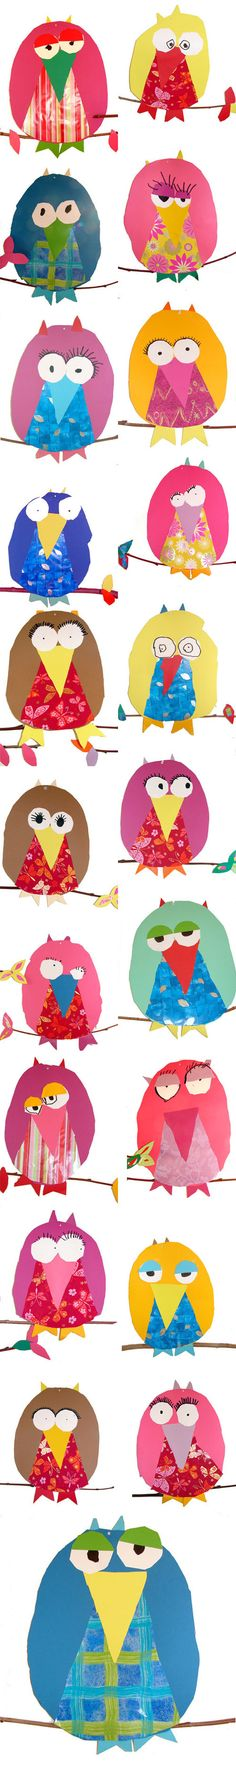 """Owls -""""whoooooo's ready for 1st grade?"""" and make it a poster for open house display!"""